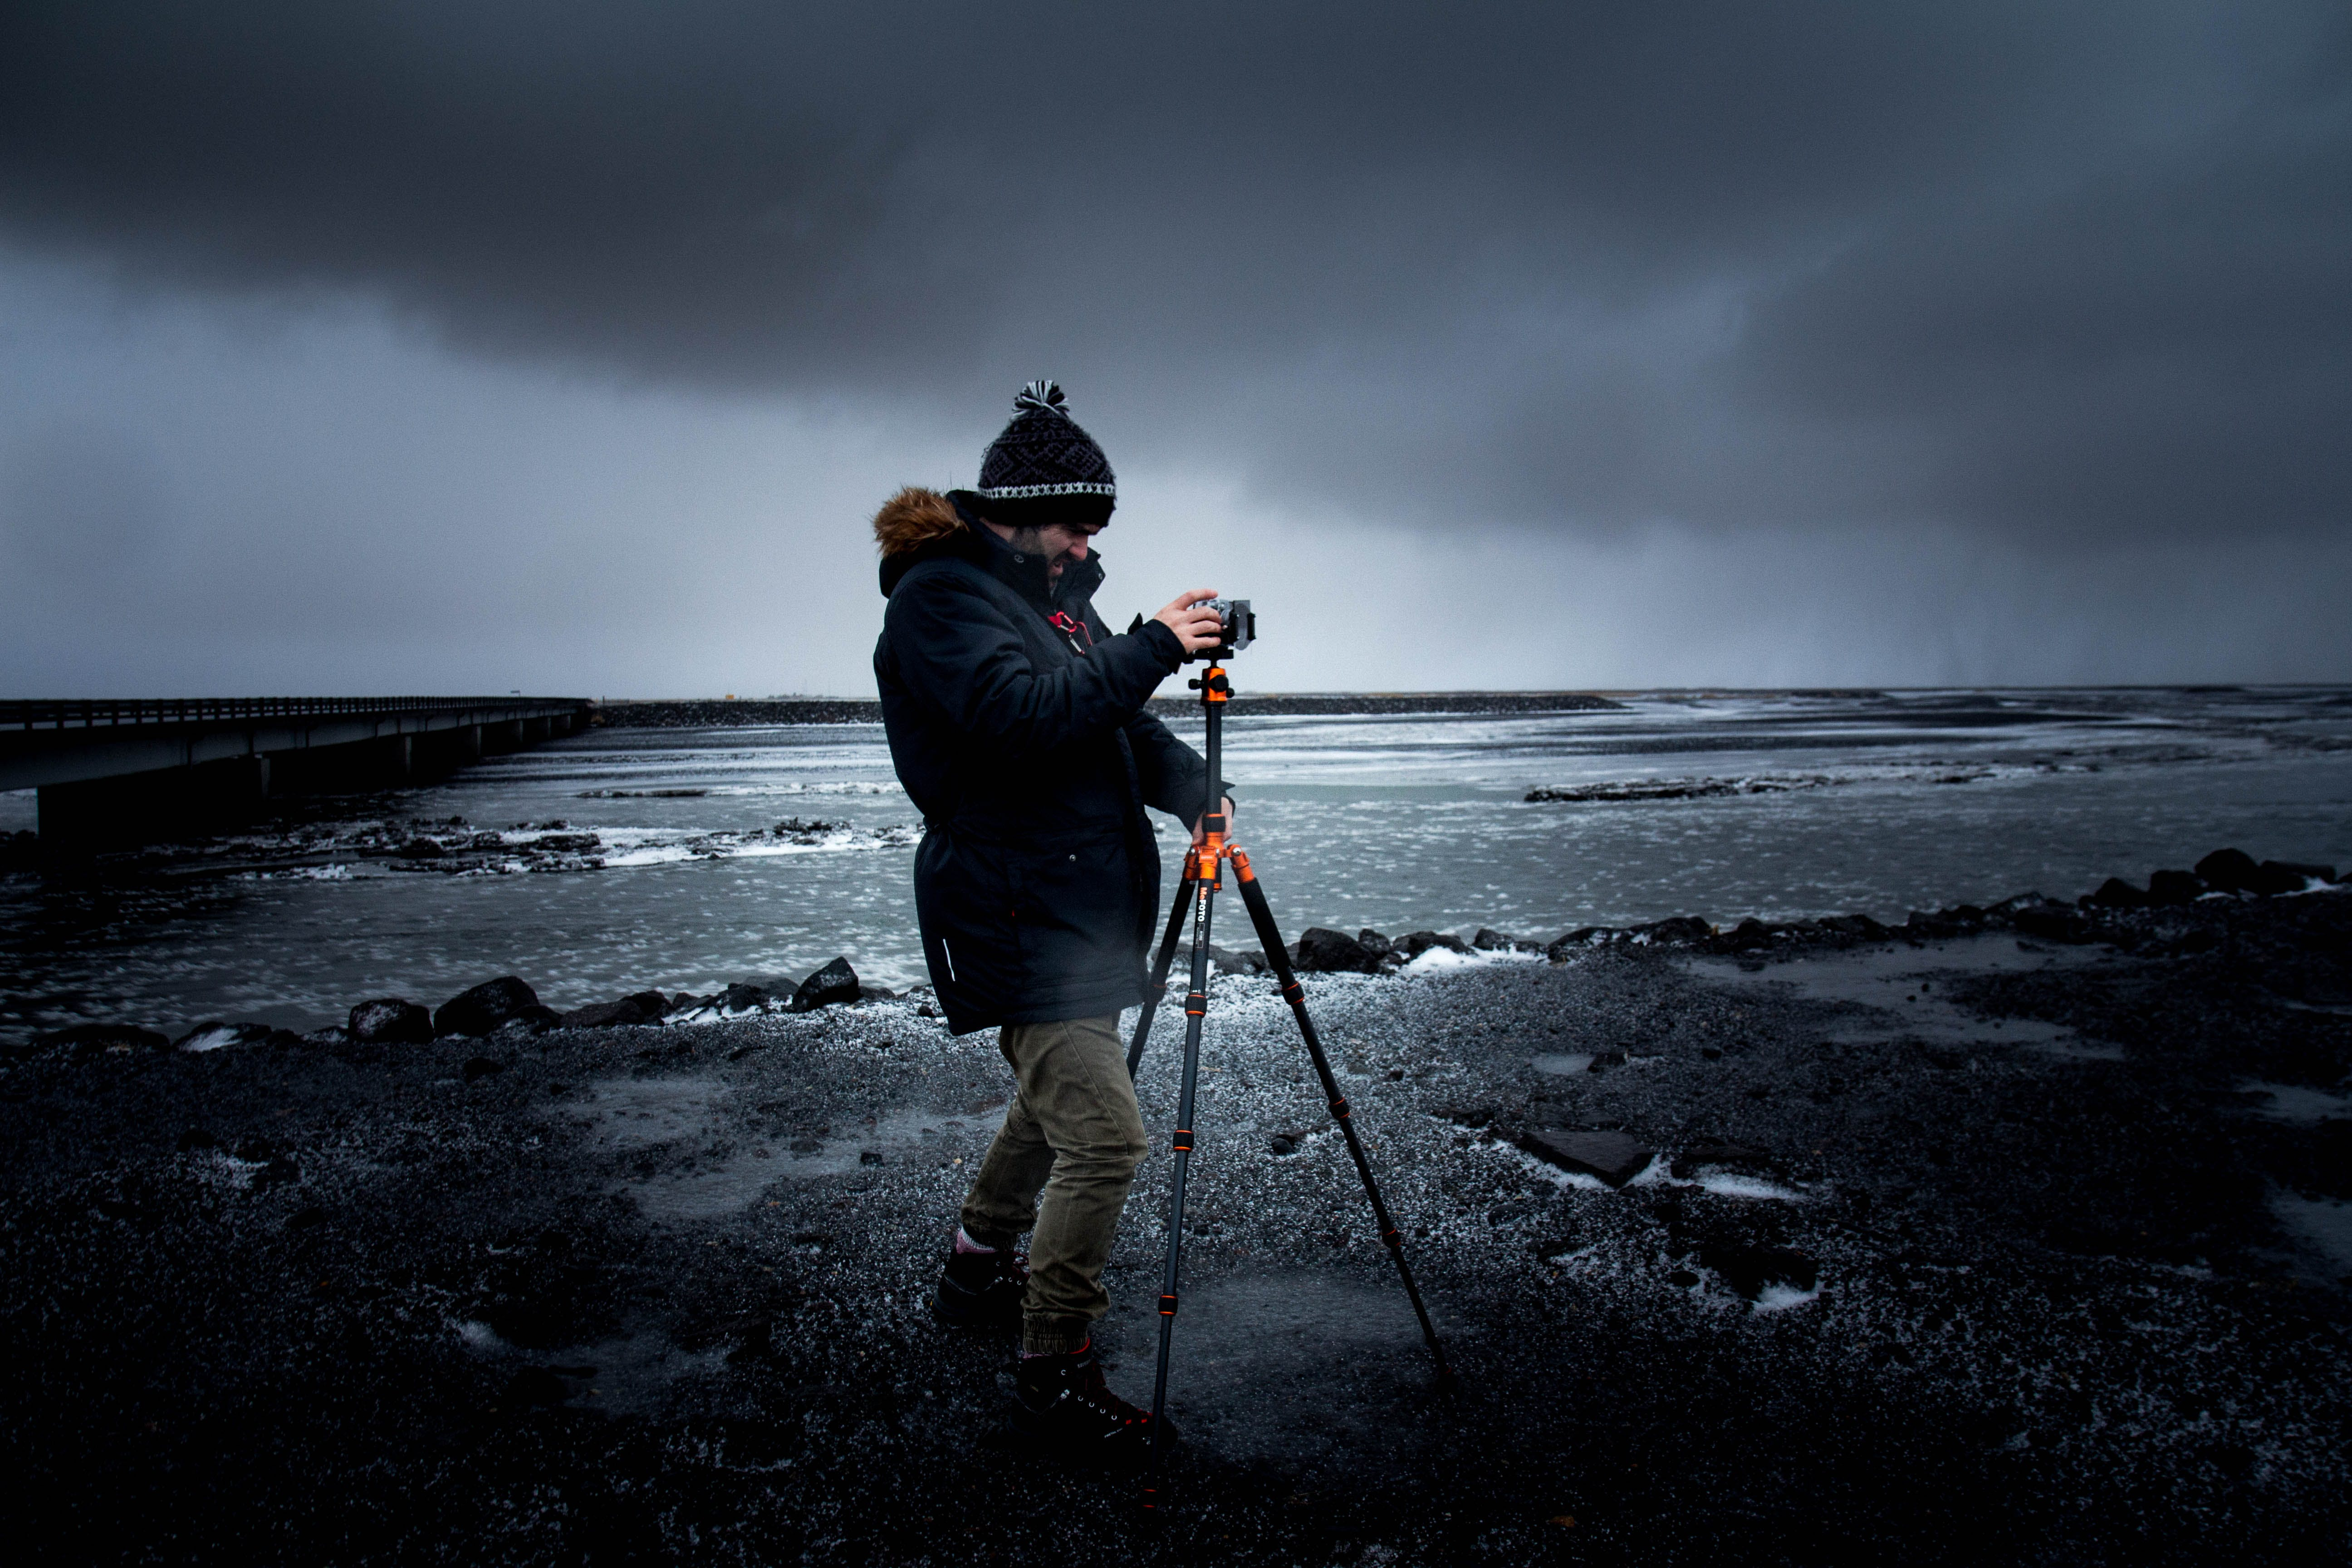 Man in Blue Coat Holding a Tripod With Camera